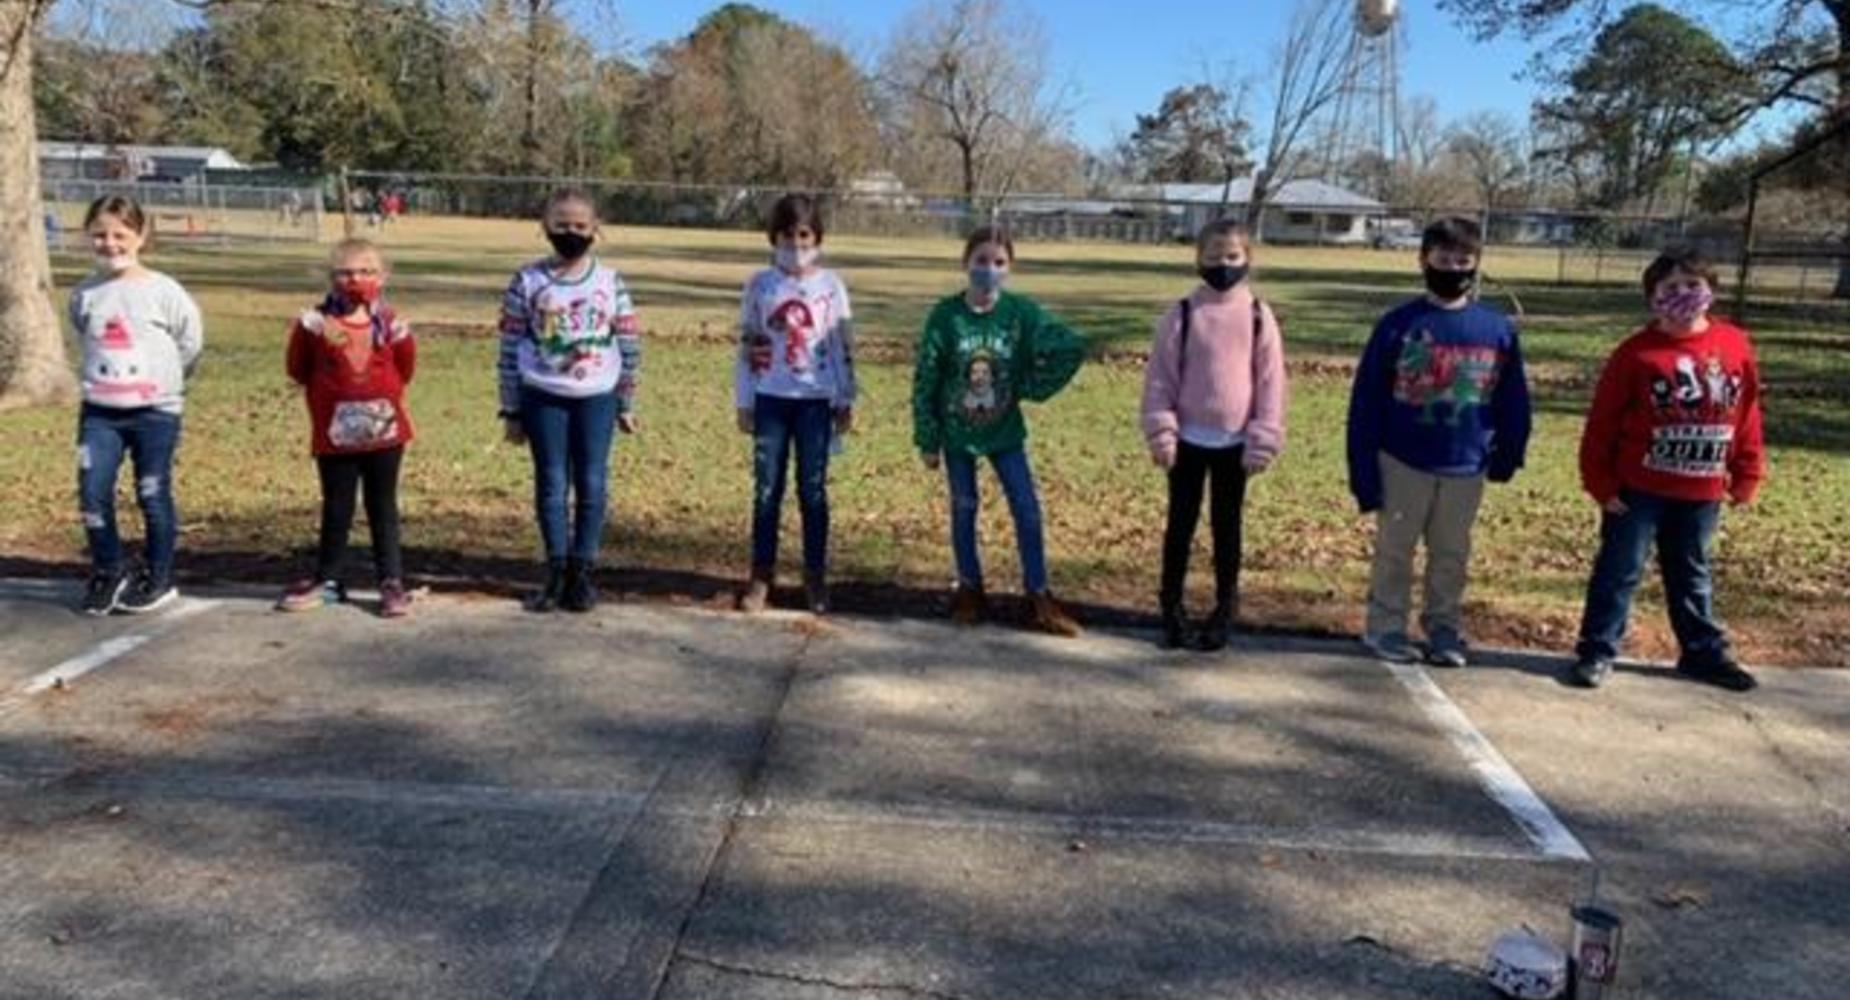 4th grade students in ugly Christmas Sweaters